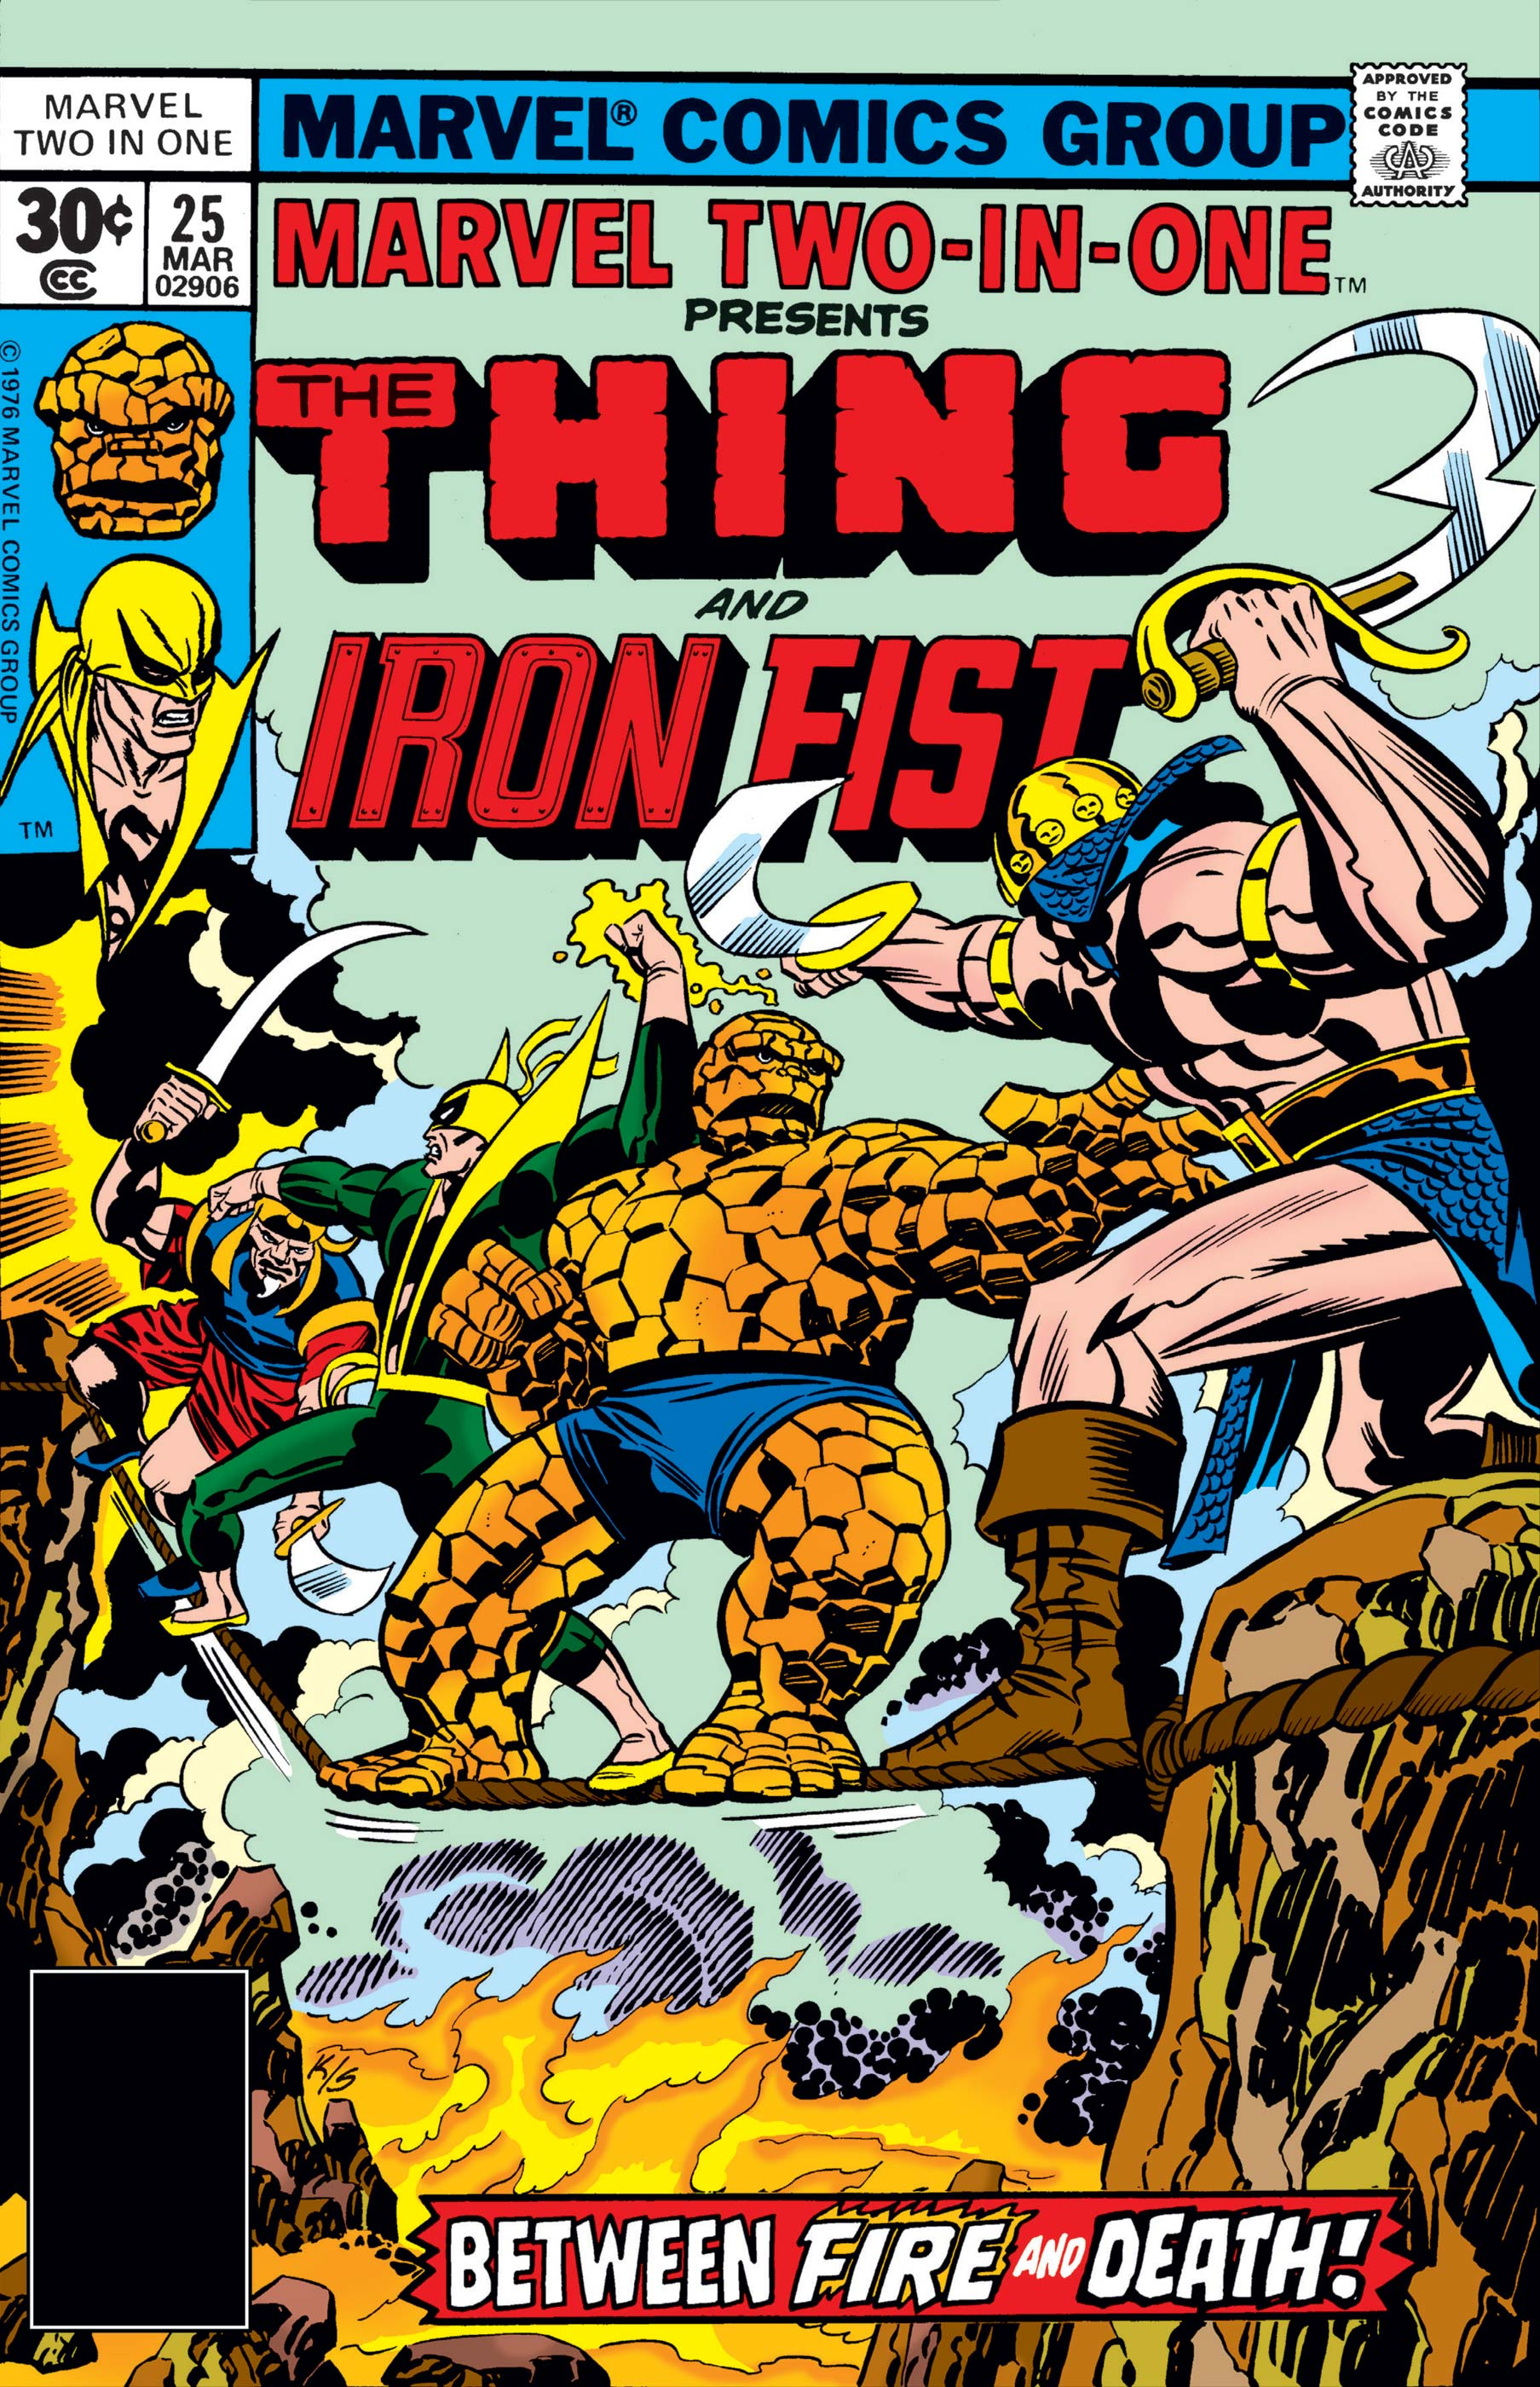 Marvel Two-in-One (1974) #25